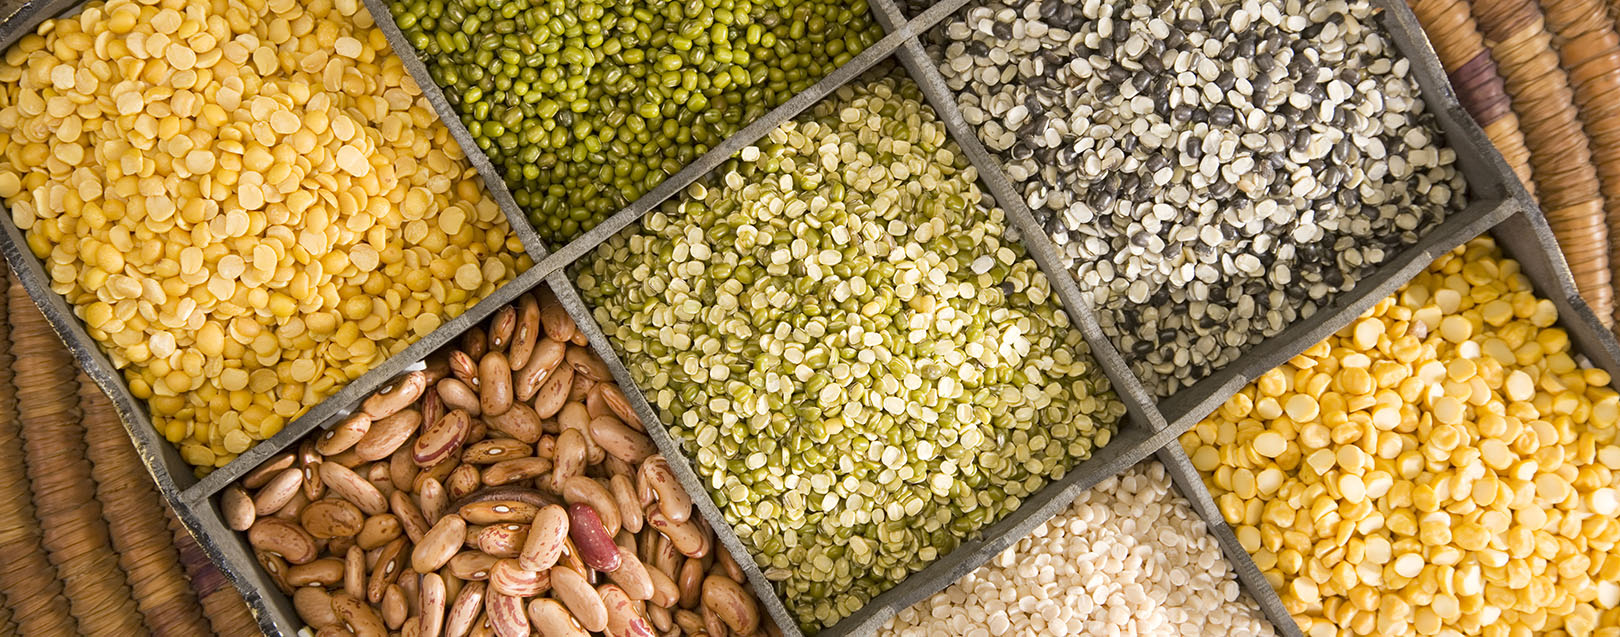 Govt to import additional 30,000 tonnes of pulses